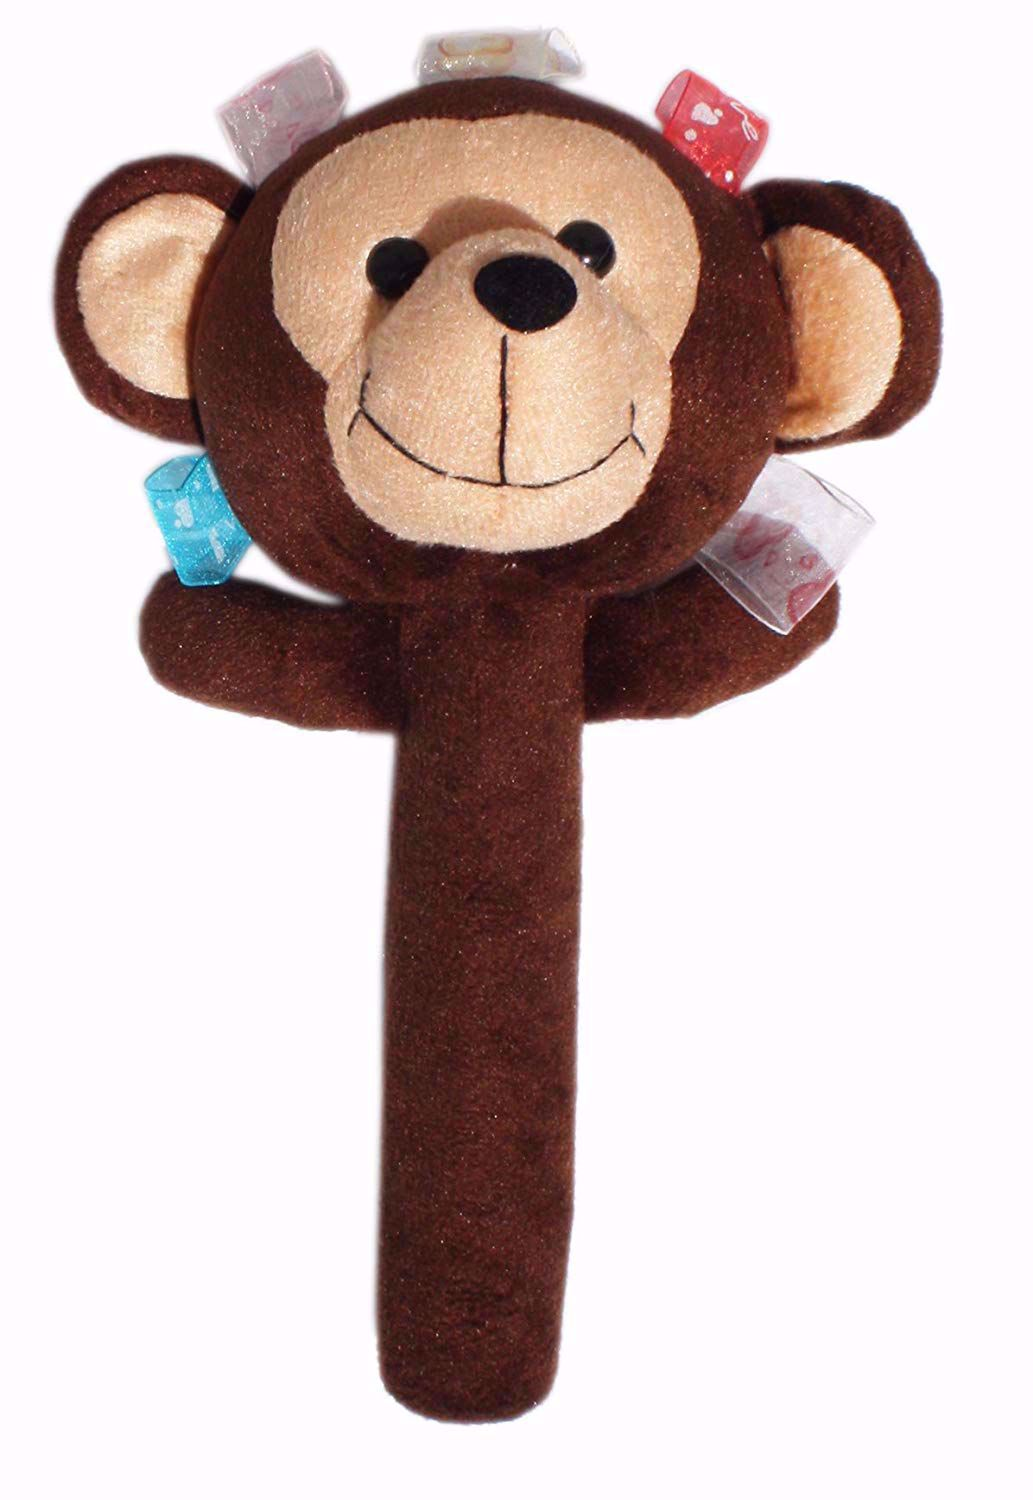 Soft Baby Rattle Monkey - BJ1103, Rattle Monkey online